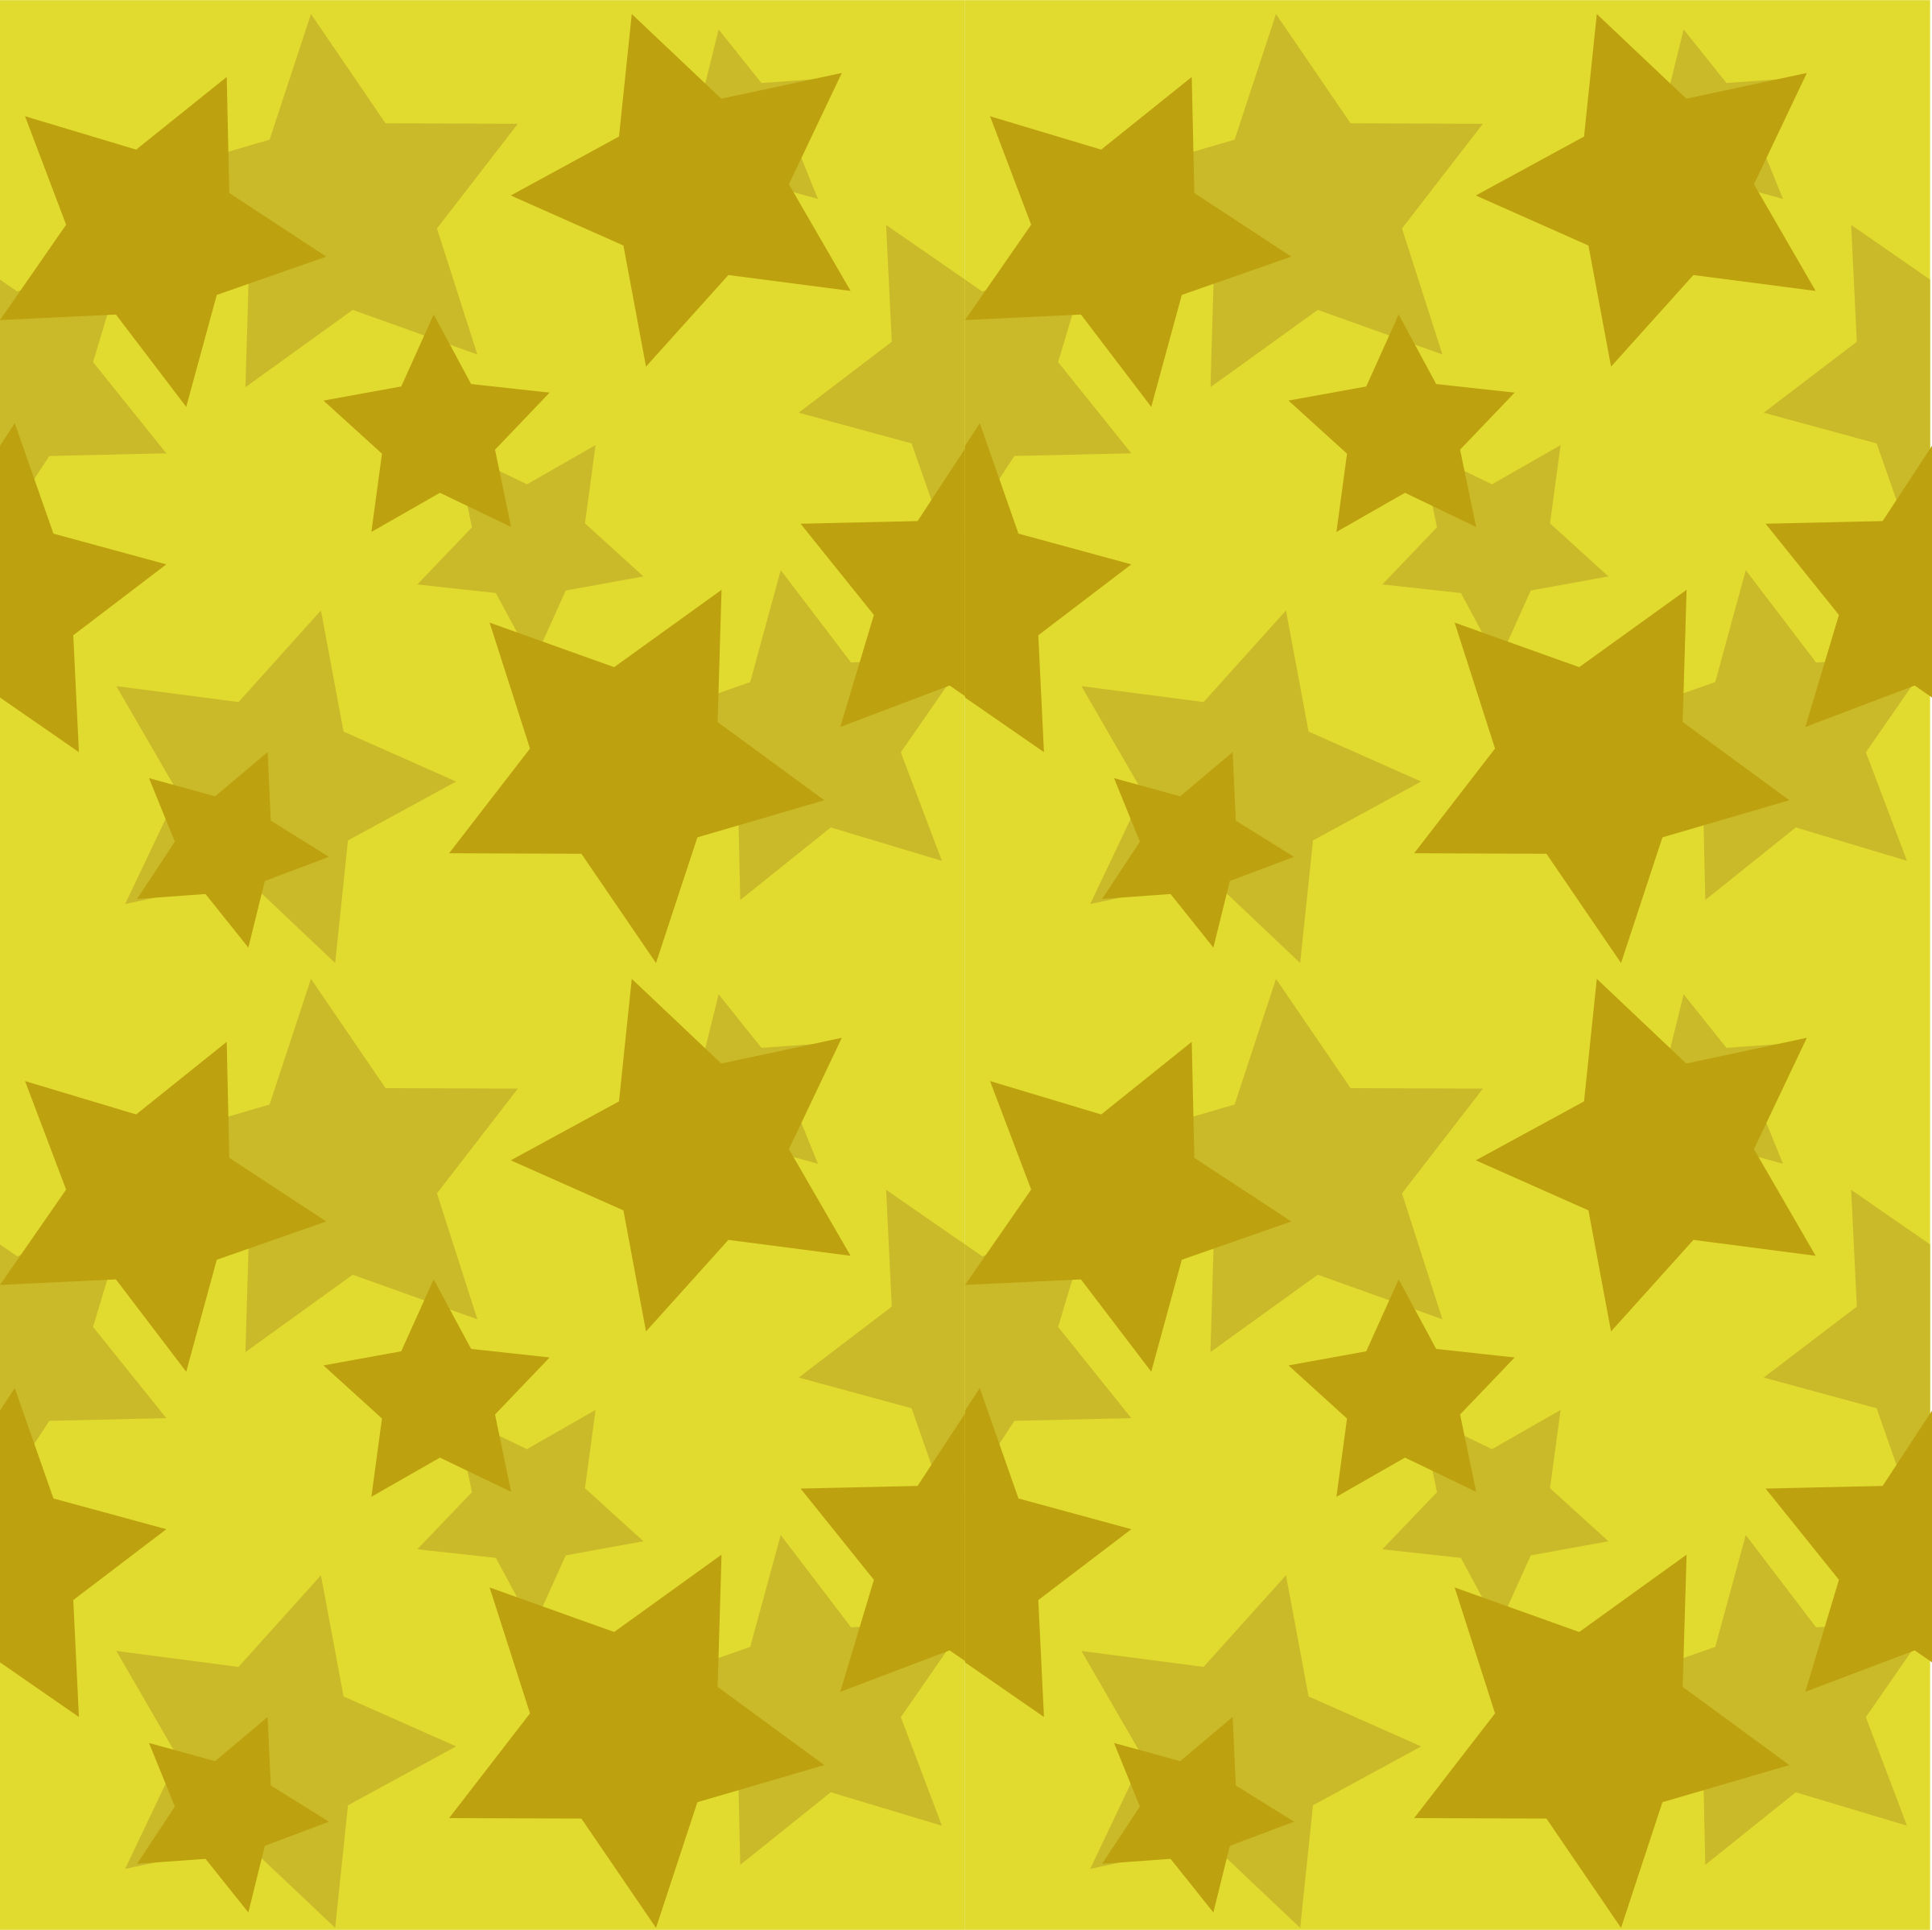 gold stars seamless pattern by OlKu